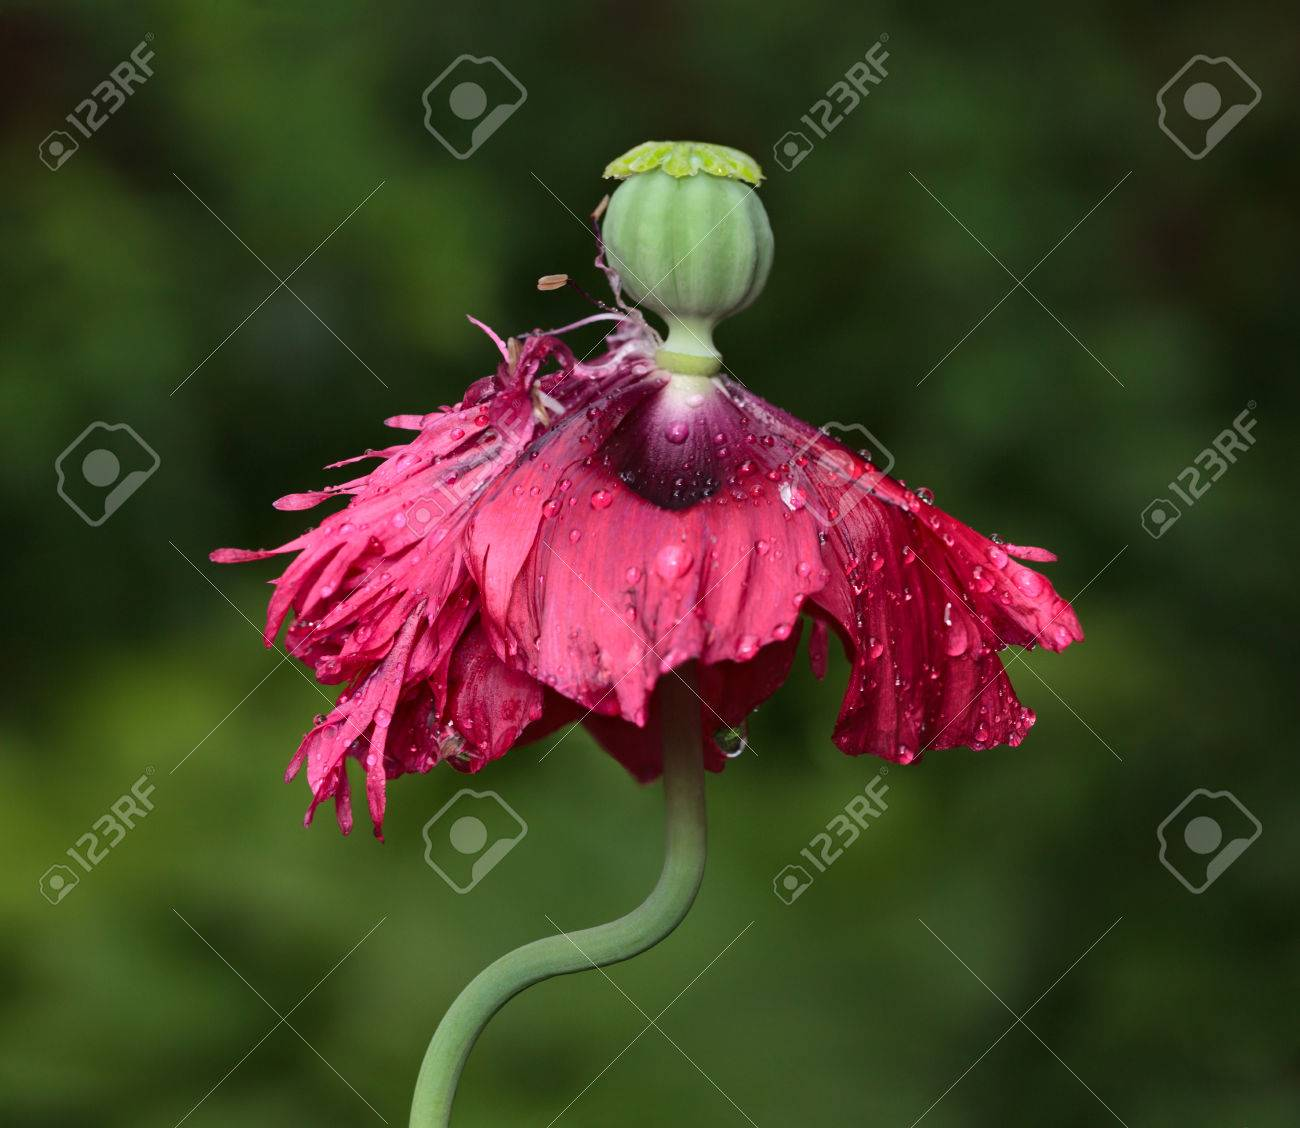 Poppy Flower Papaver Paeoniflorum After Blooming And New Green